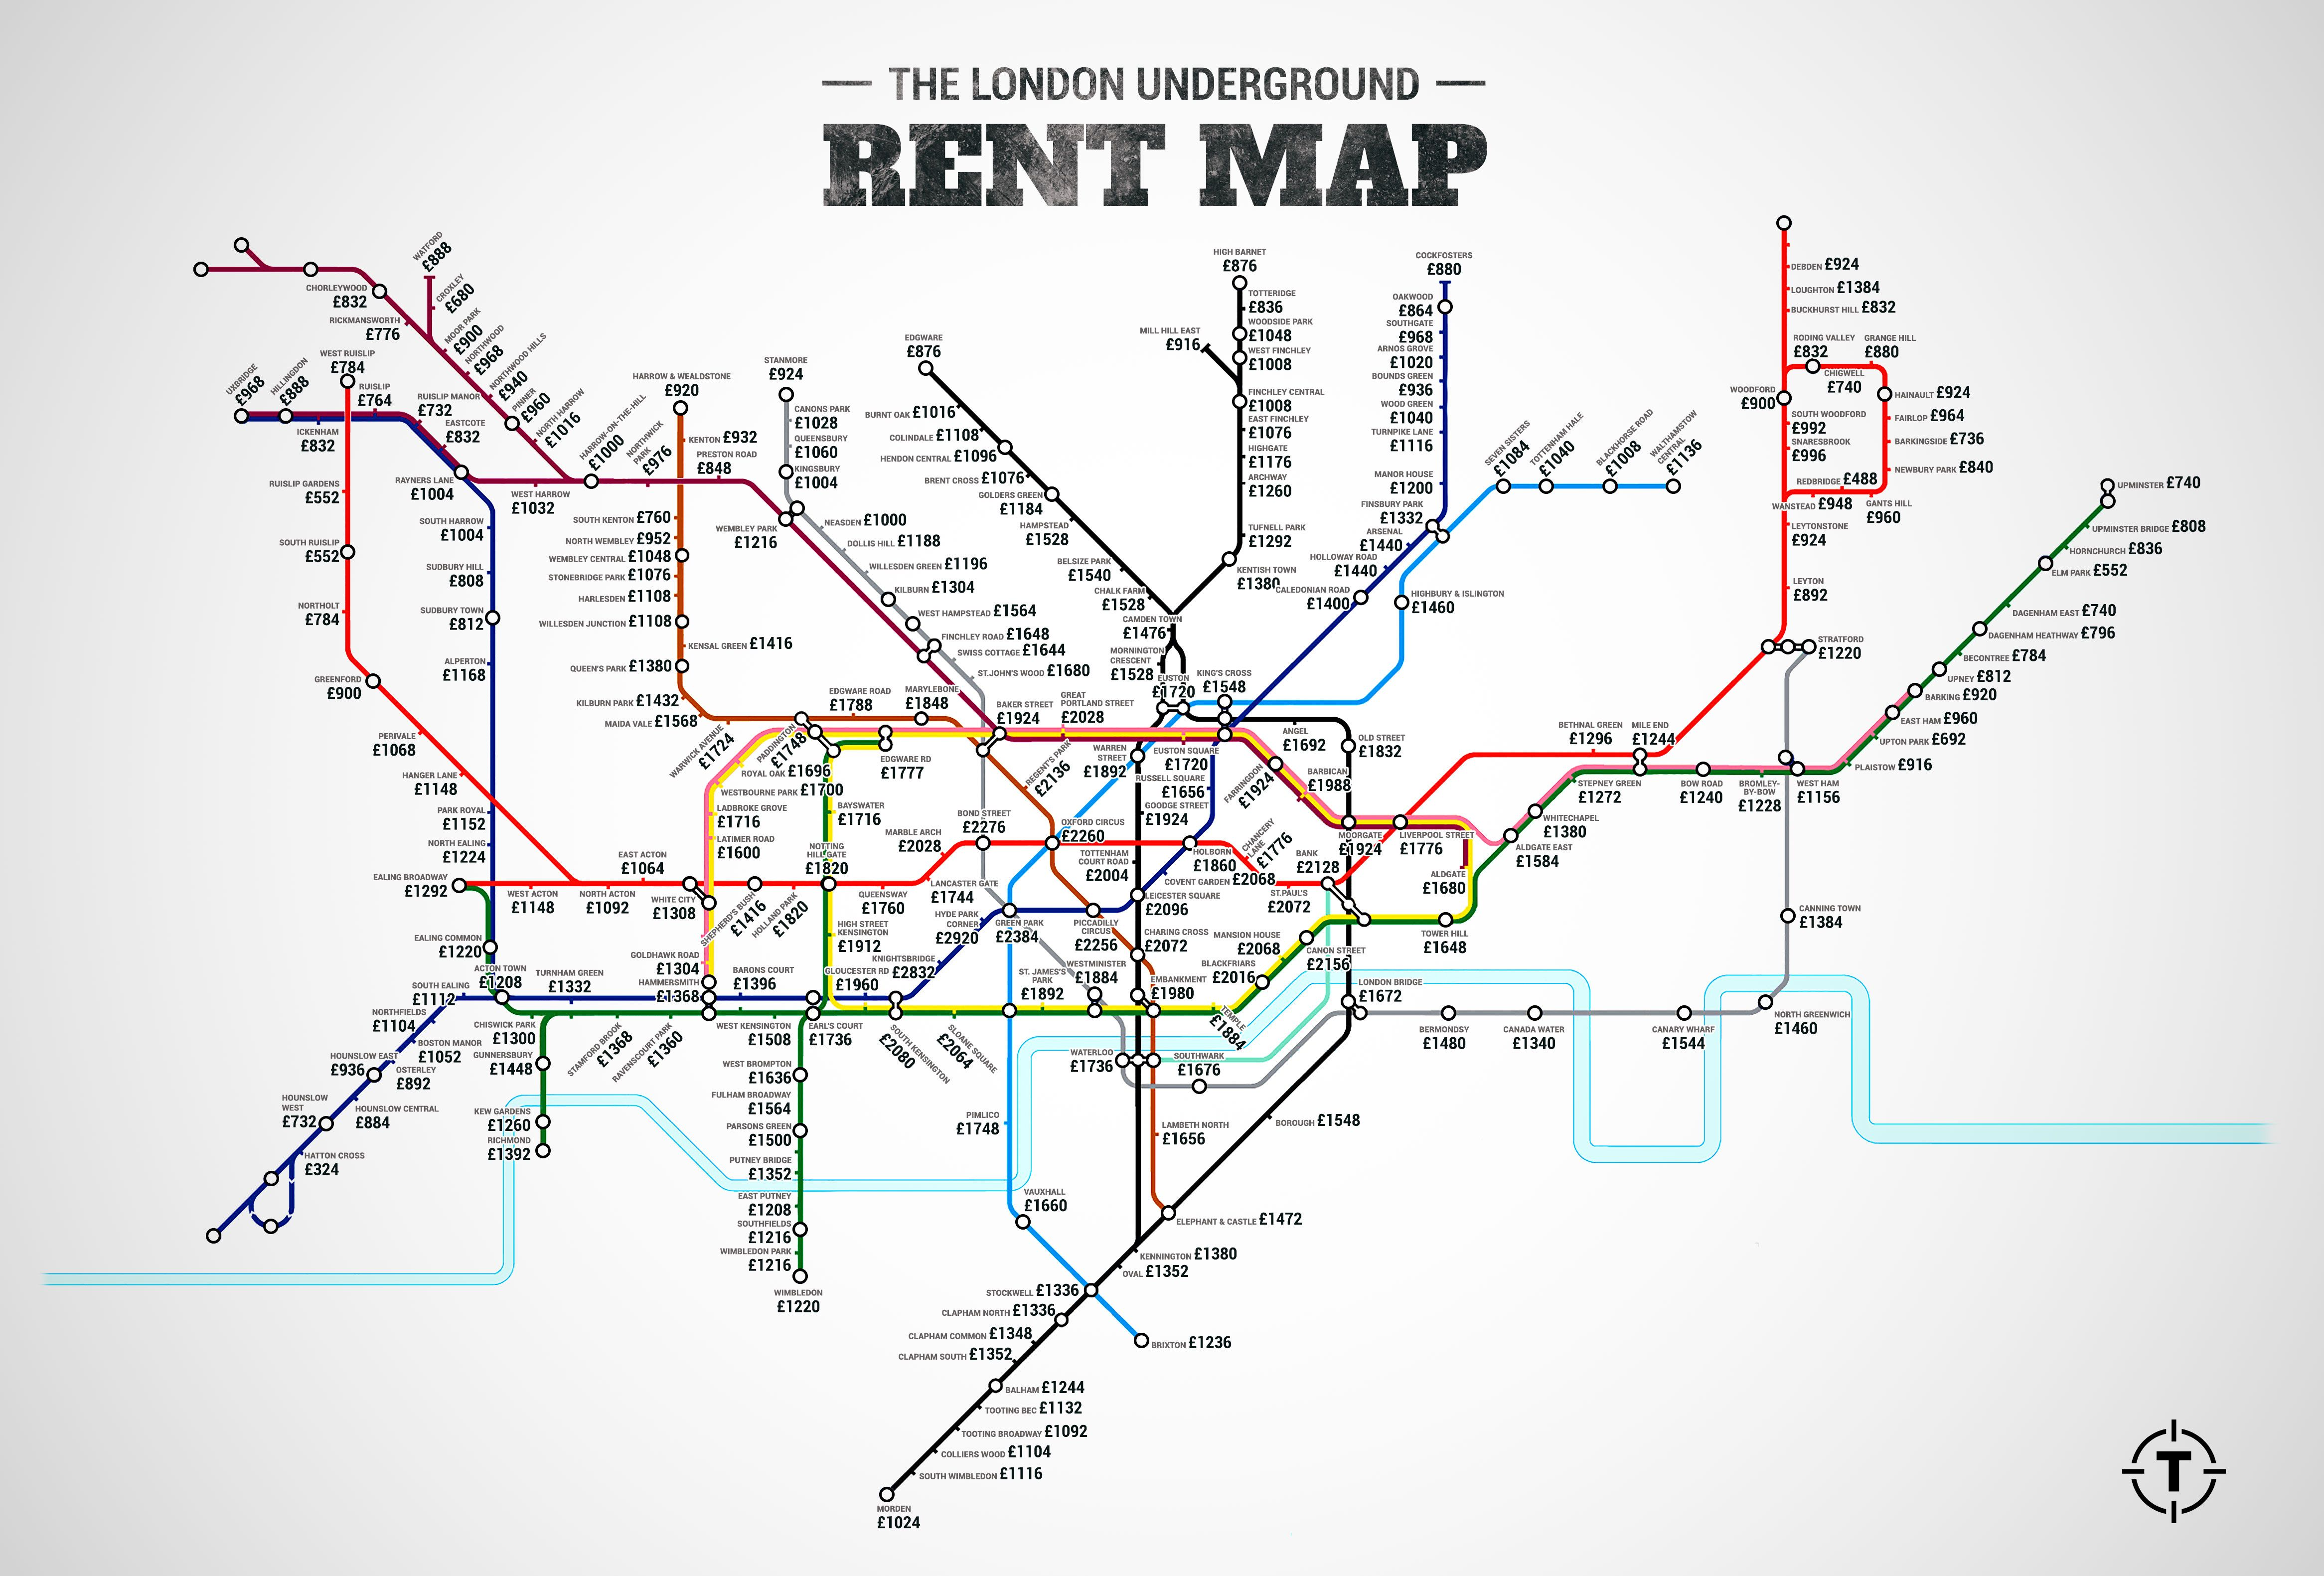 Subway Map Live.The London Underground Rent Map Where You Can T Afford To Live By